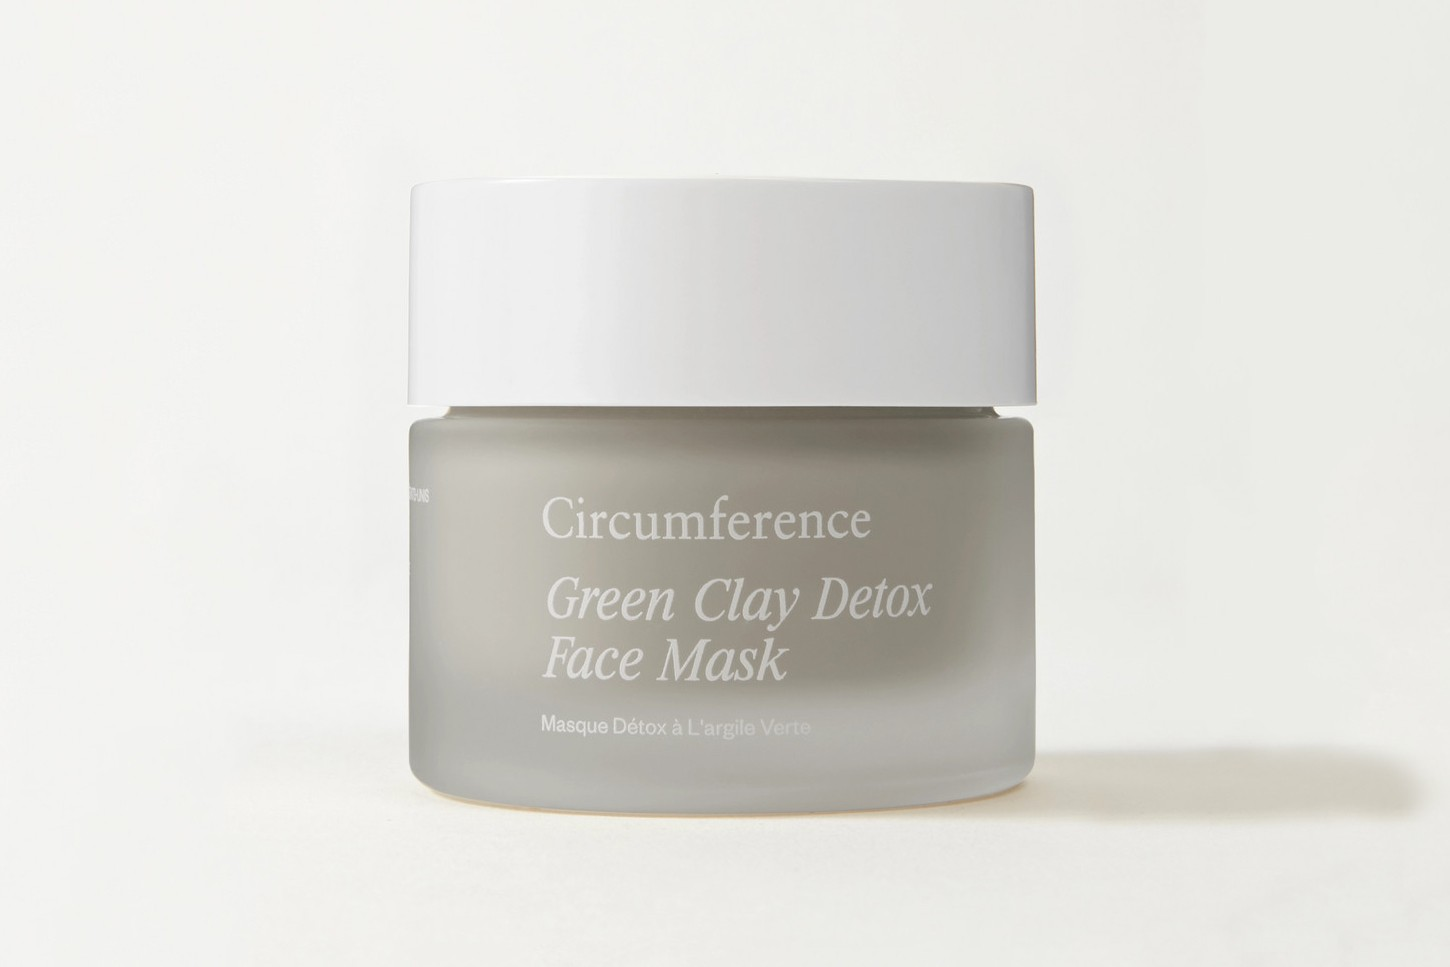 circumference essential mask set skincare review green clay detox face in depth hydration